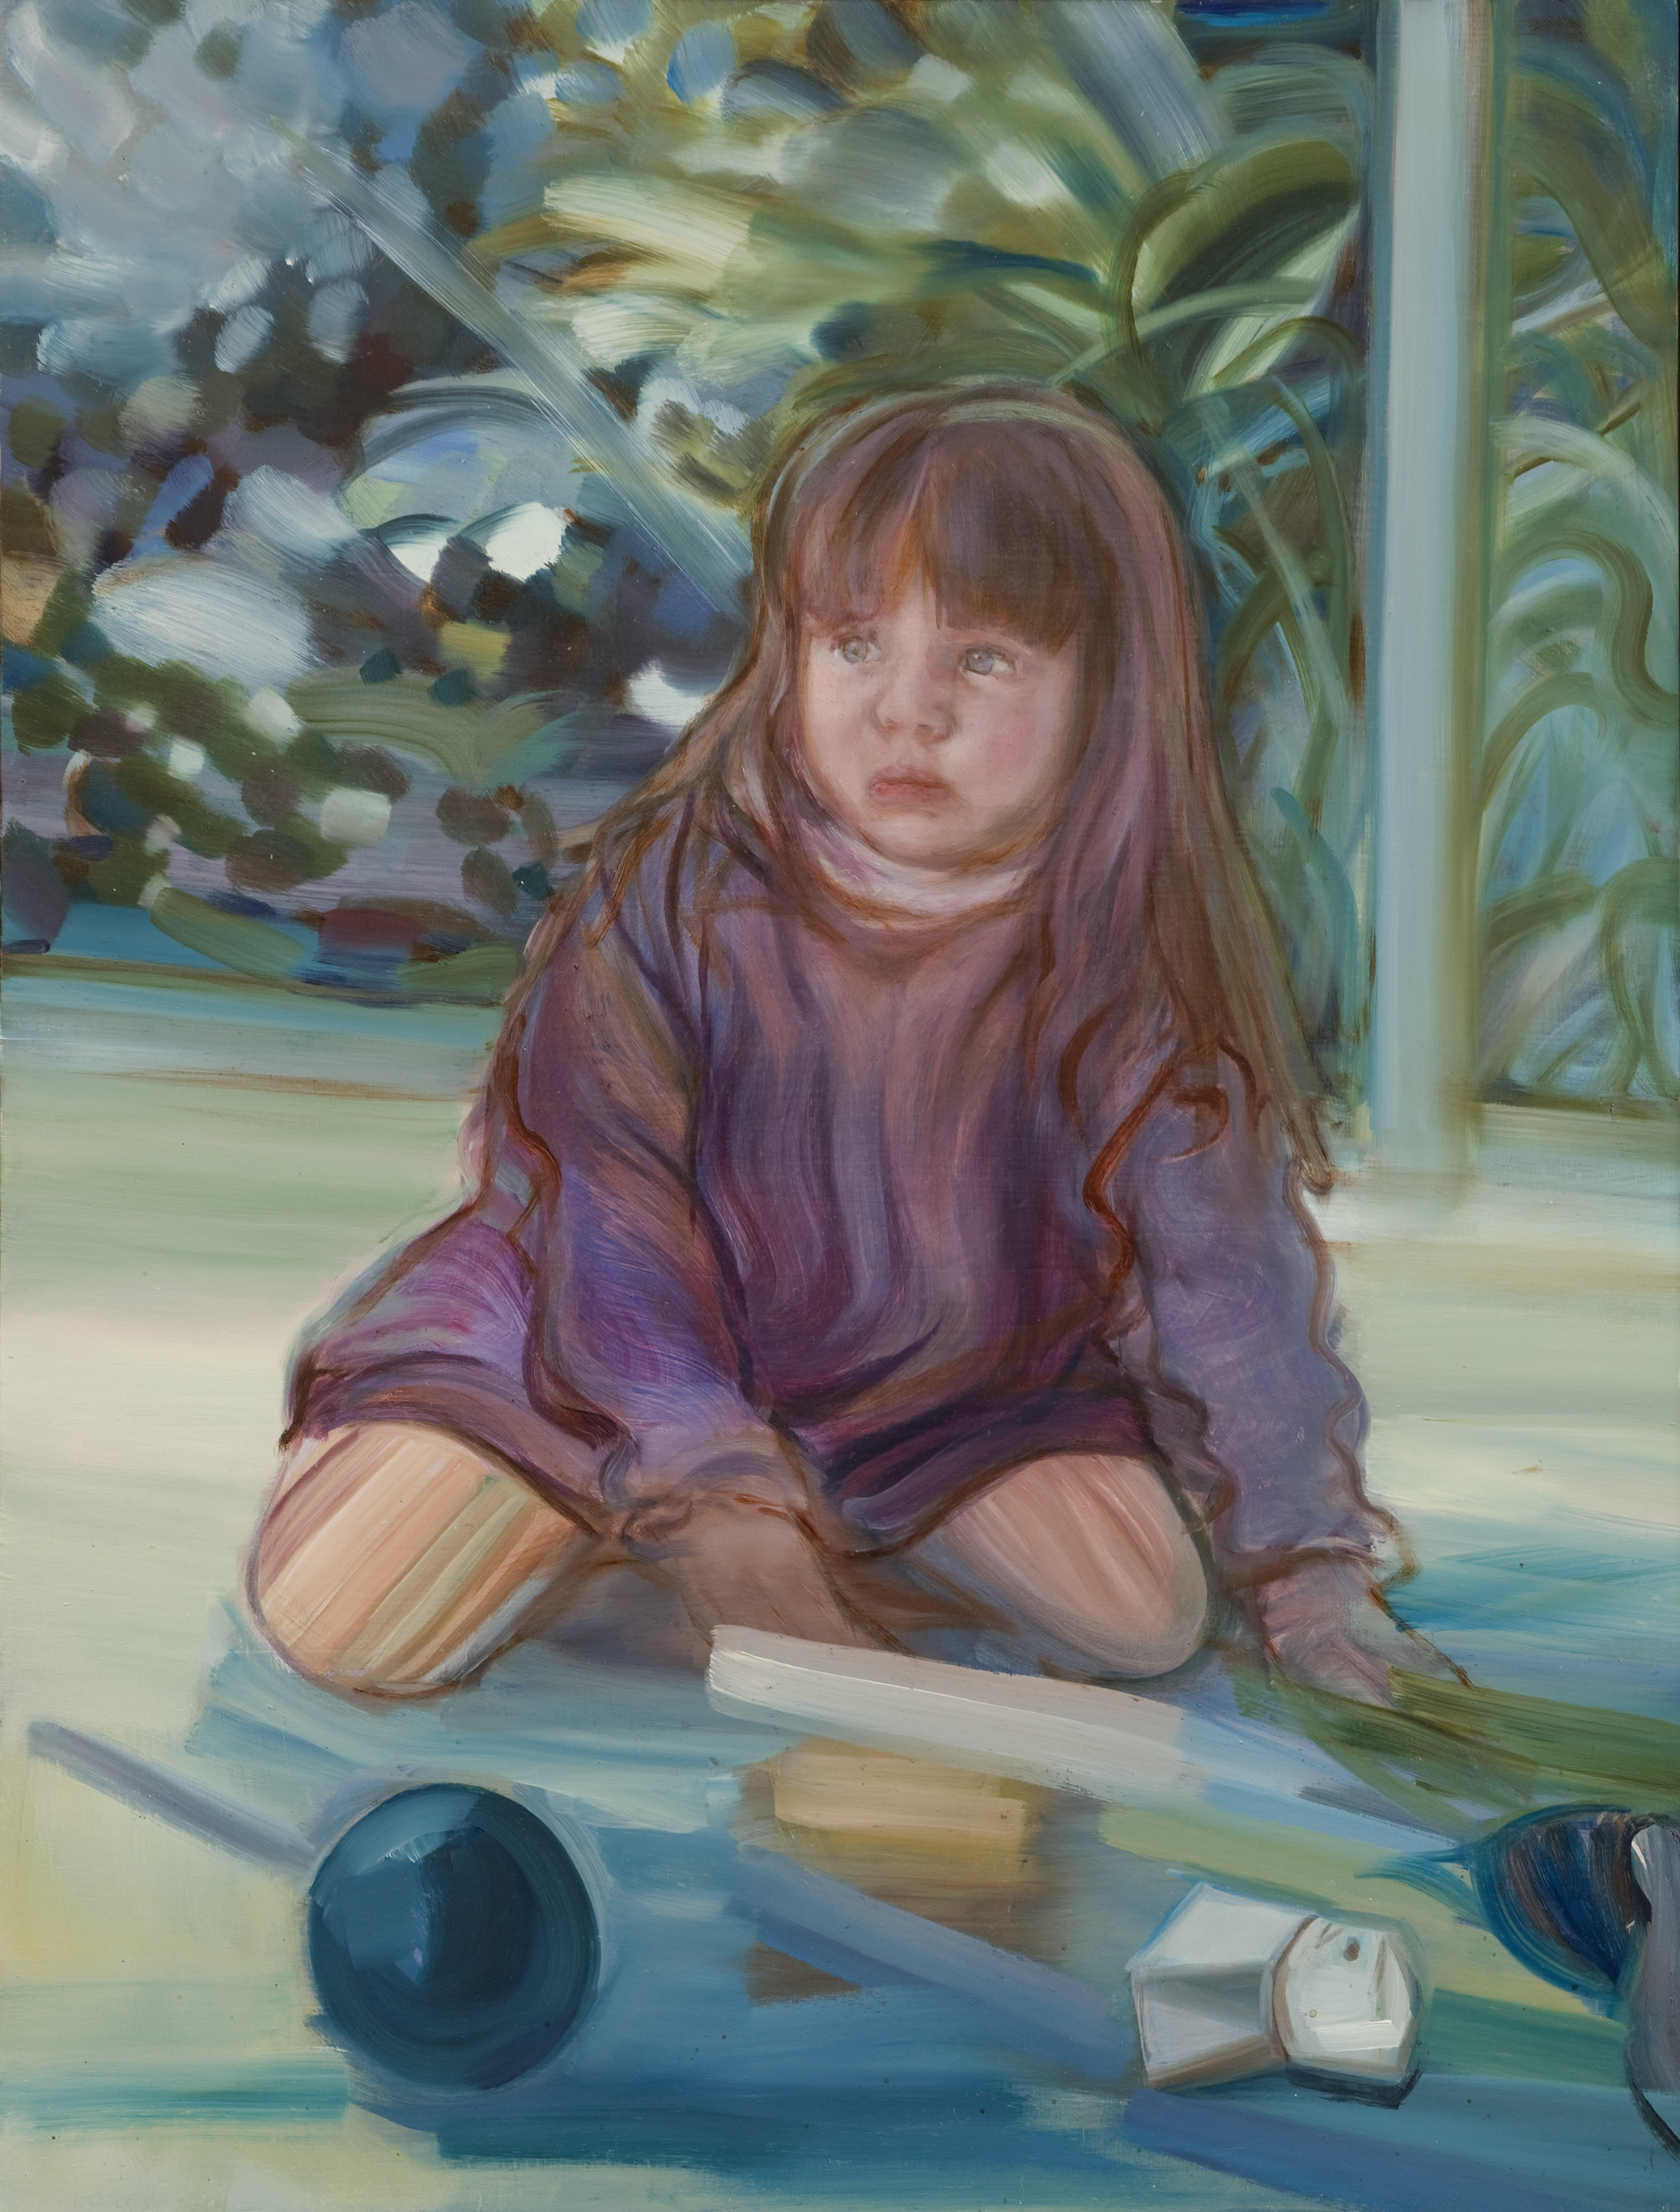 Conservatory , Oil on board with Vic Ash frame, 55 x 44 cm, 2011. Photograph courtesy of Jake Walker